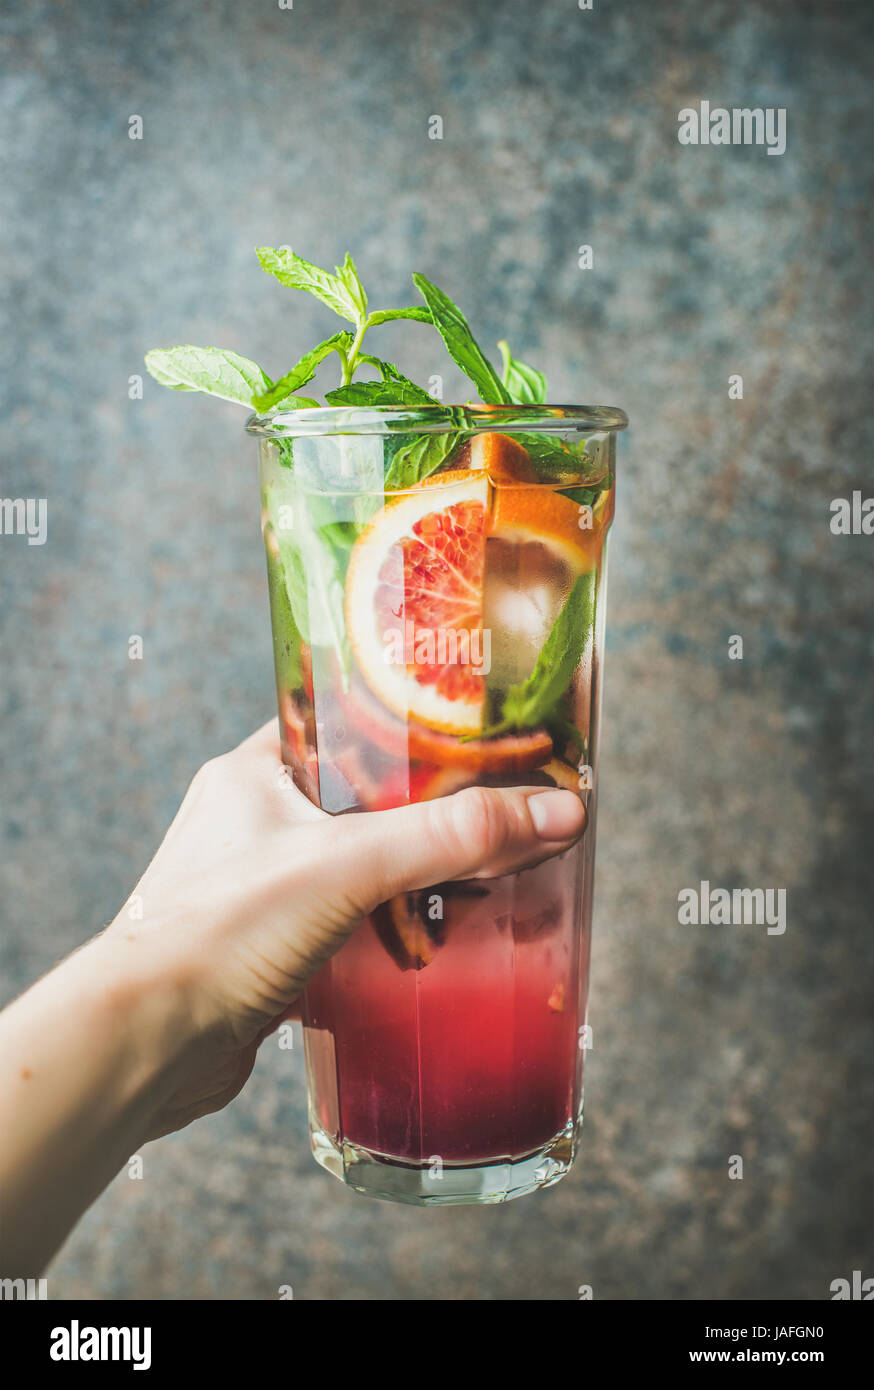 Woman's hand holding glass of blood orange citrus lemonade with mint and ice, dark brown stone background. Refreshing - Stock Image